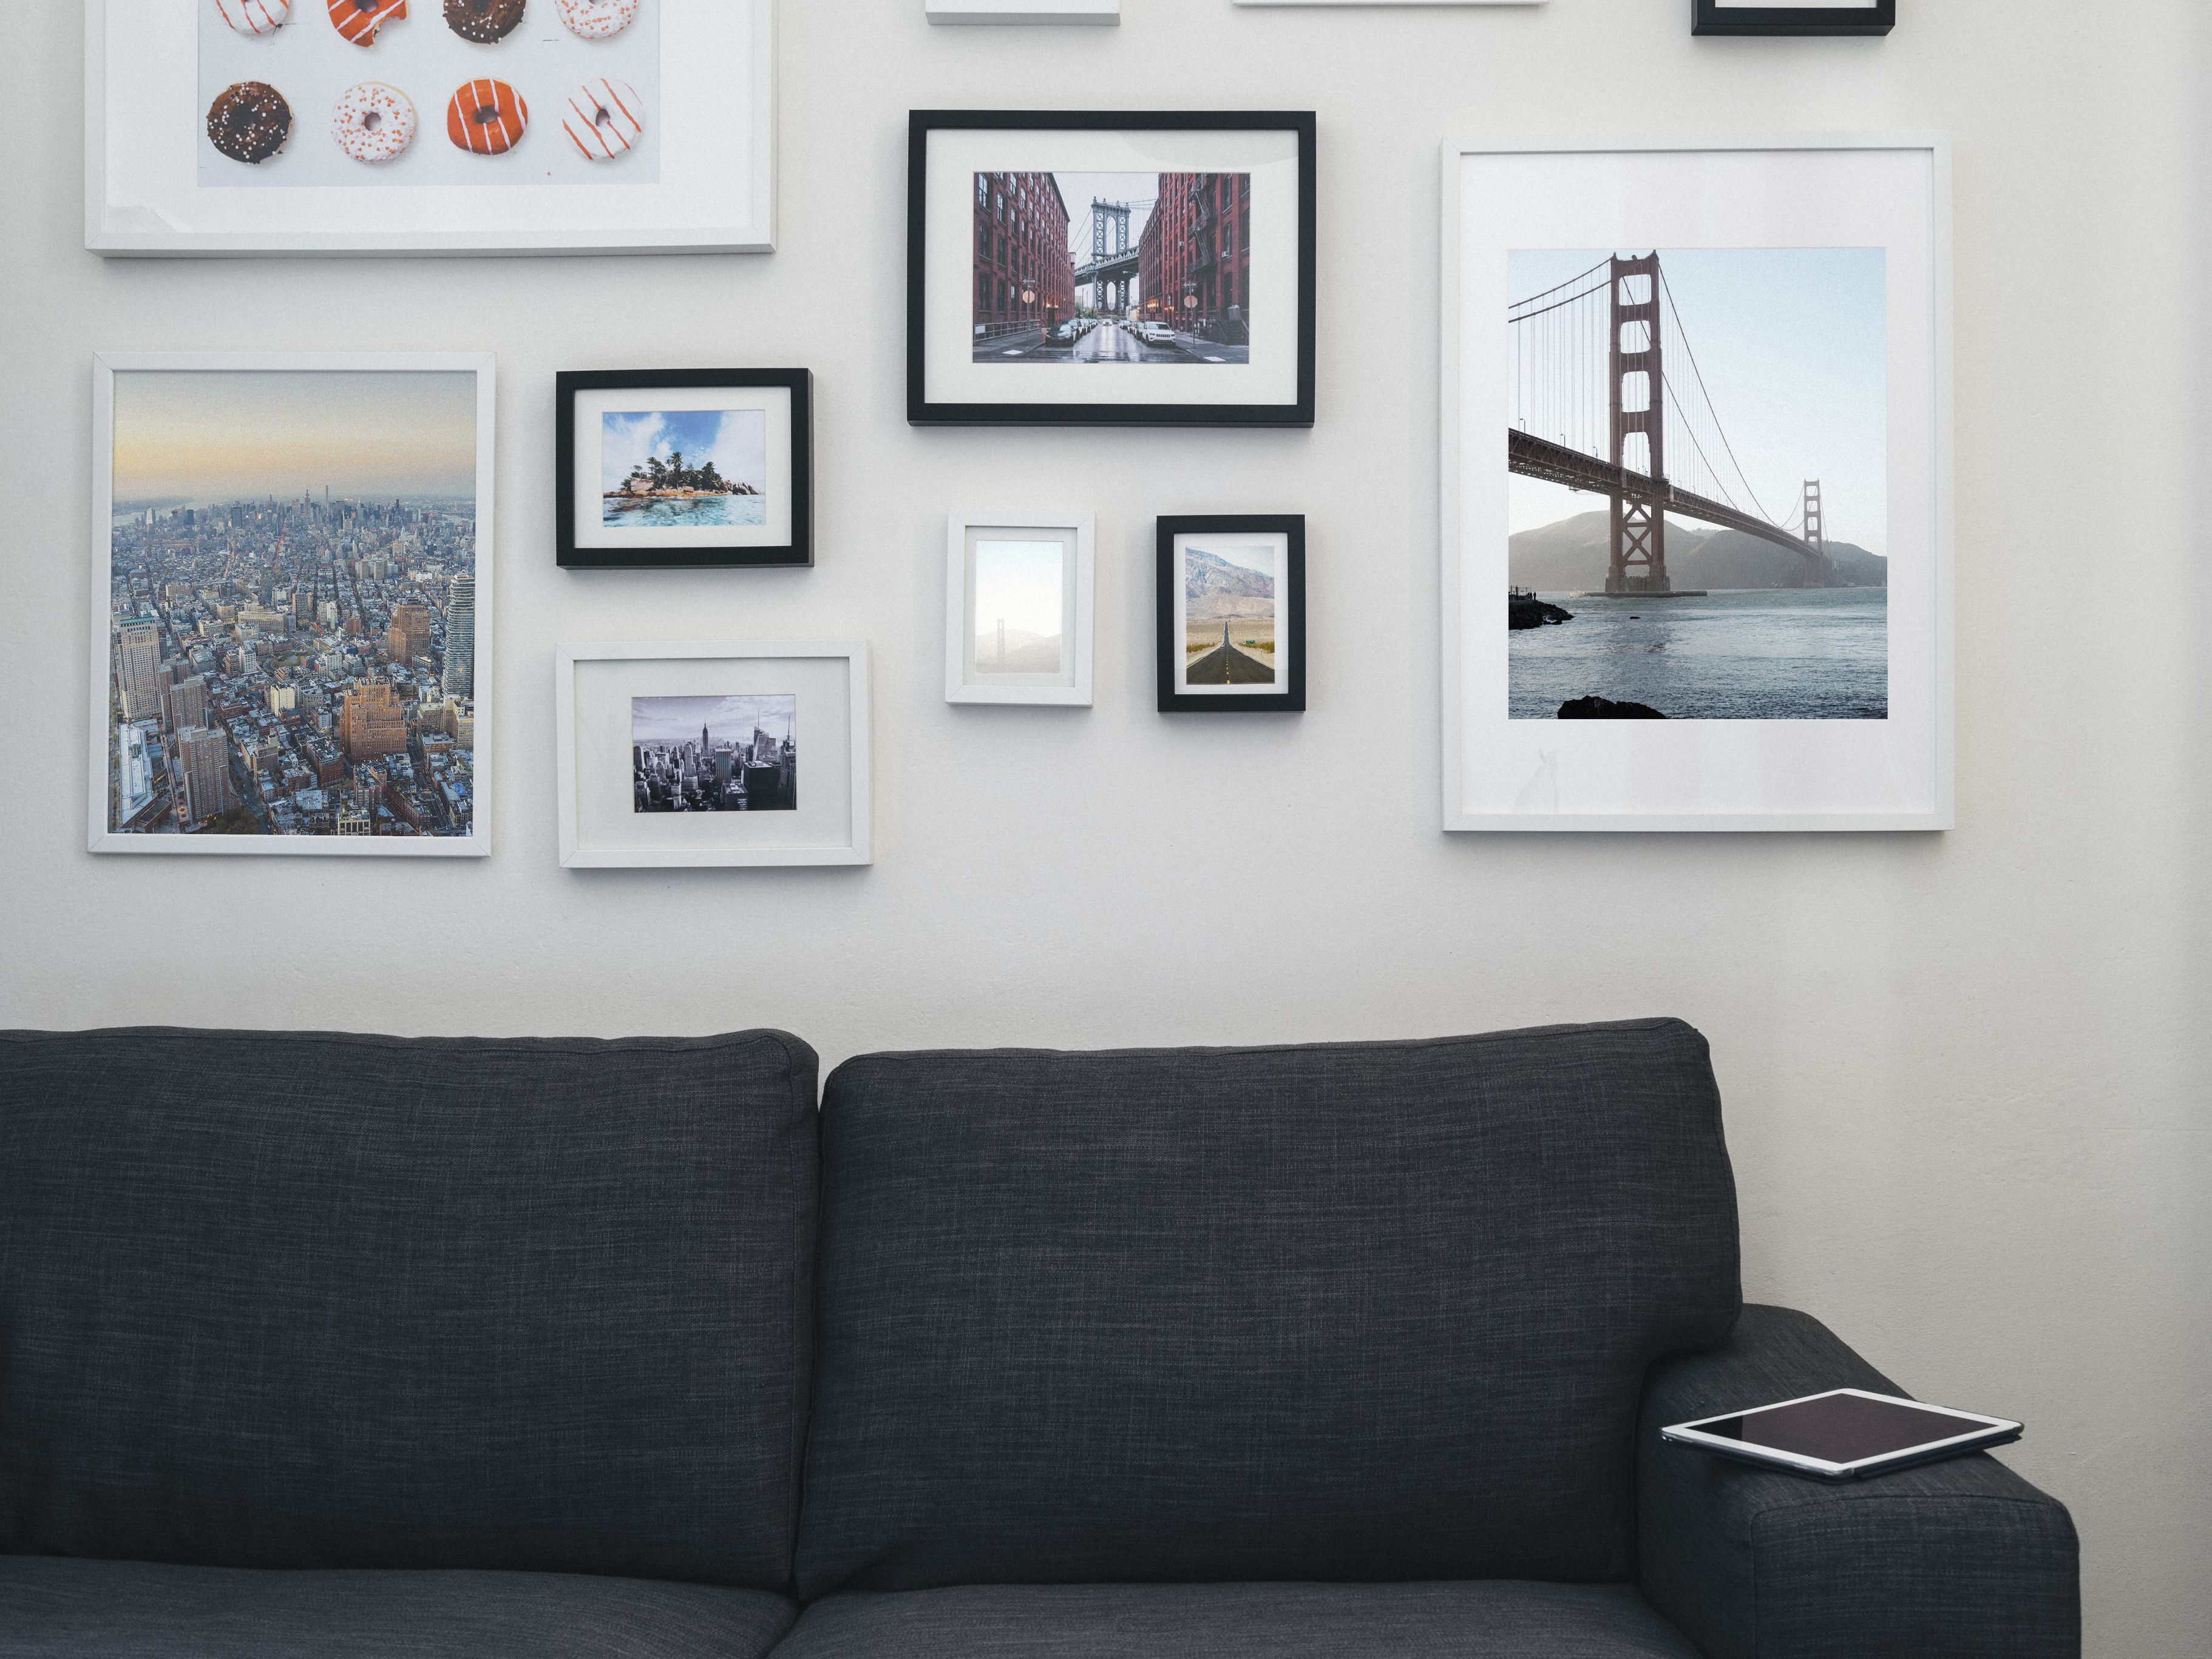 fd127f290c0 Best Picture Frames of 2019